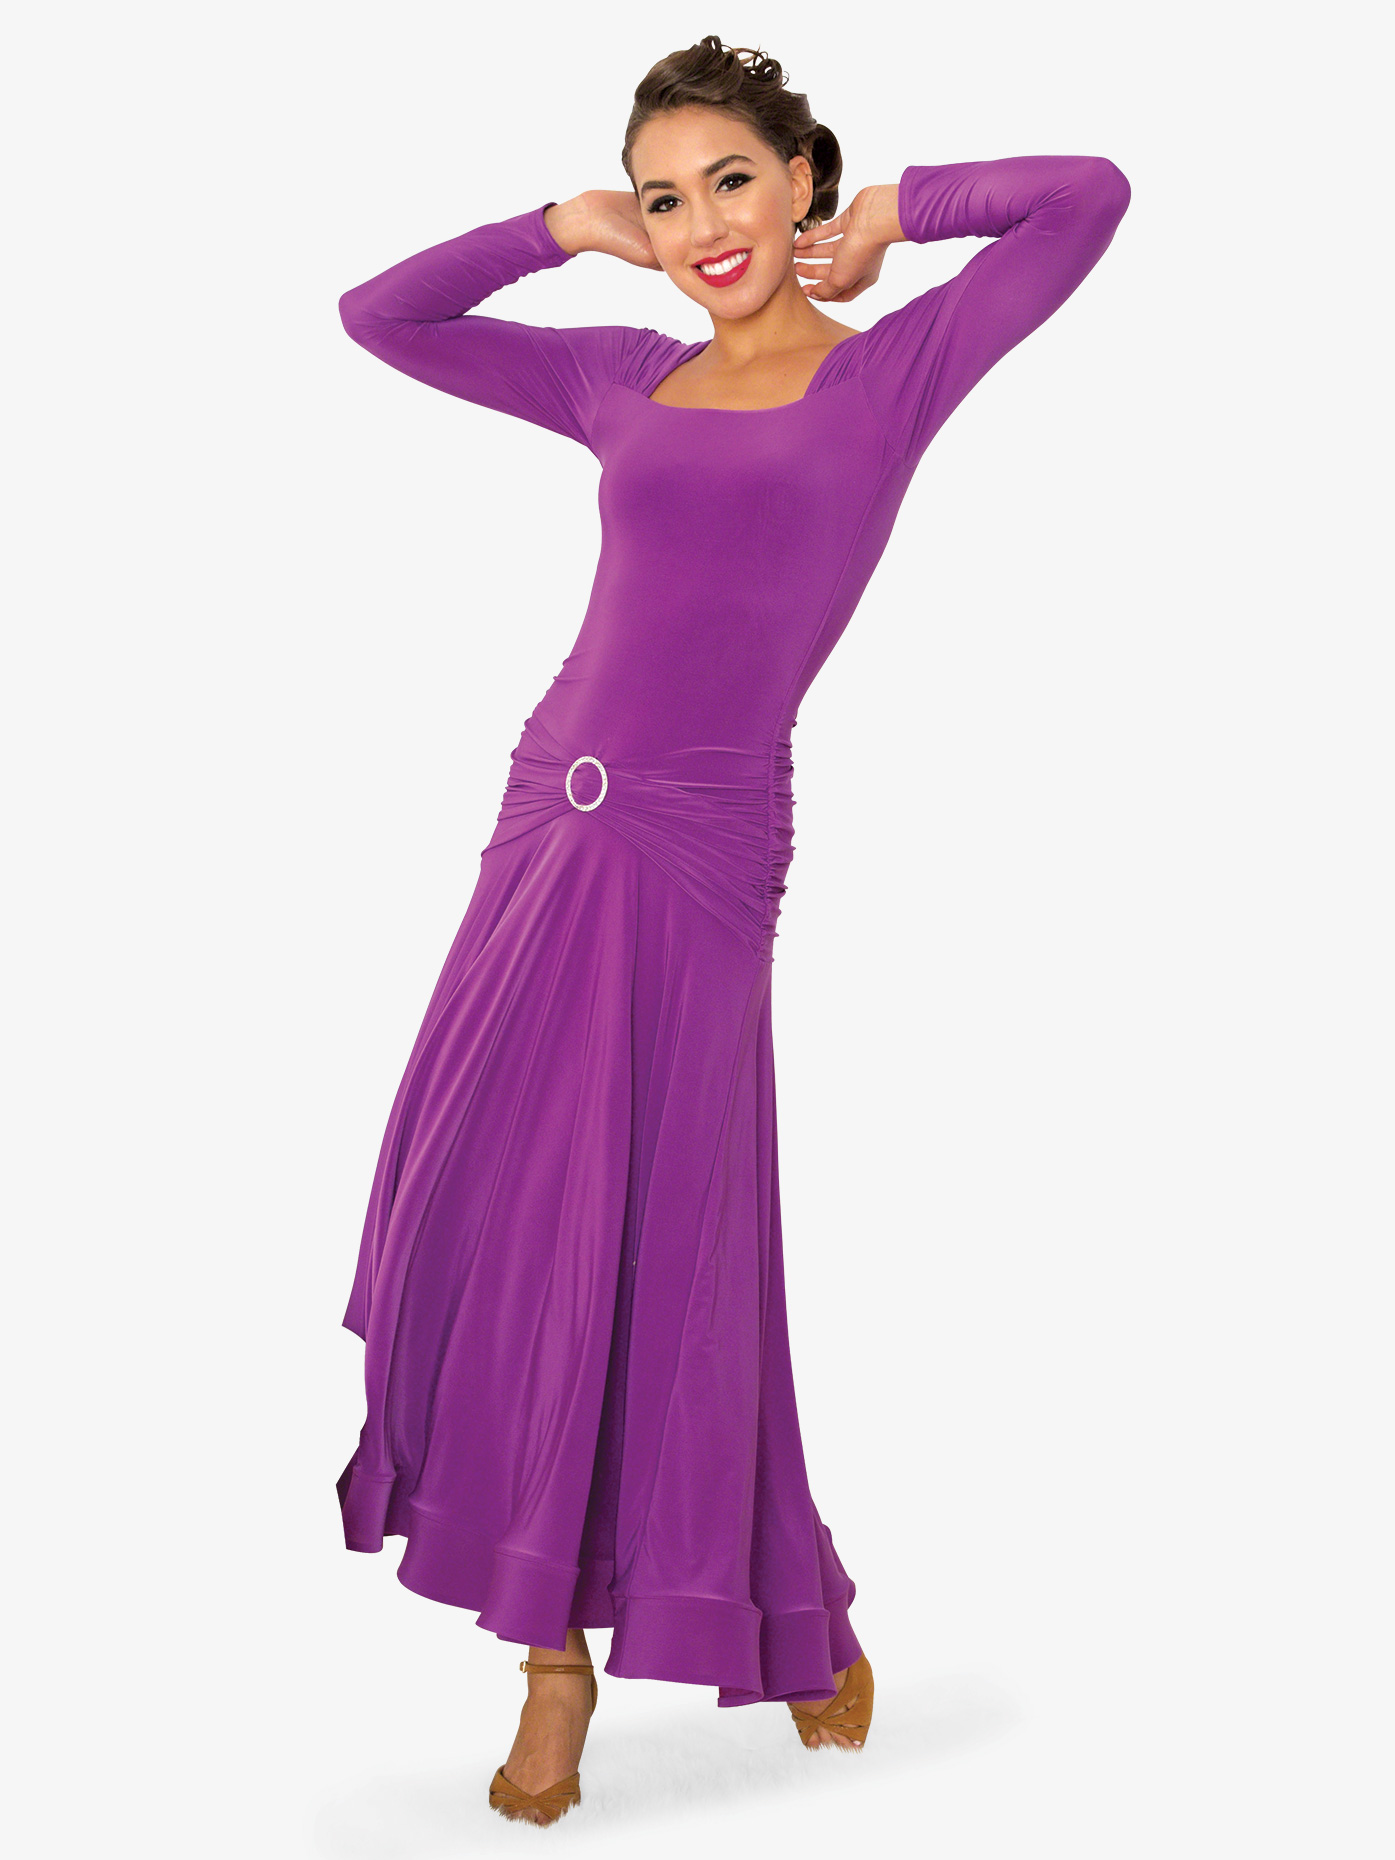 5bc6d3ae5 Womens Square Front Long Ballroom Dance Dress - Style No D808. Loading zoom